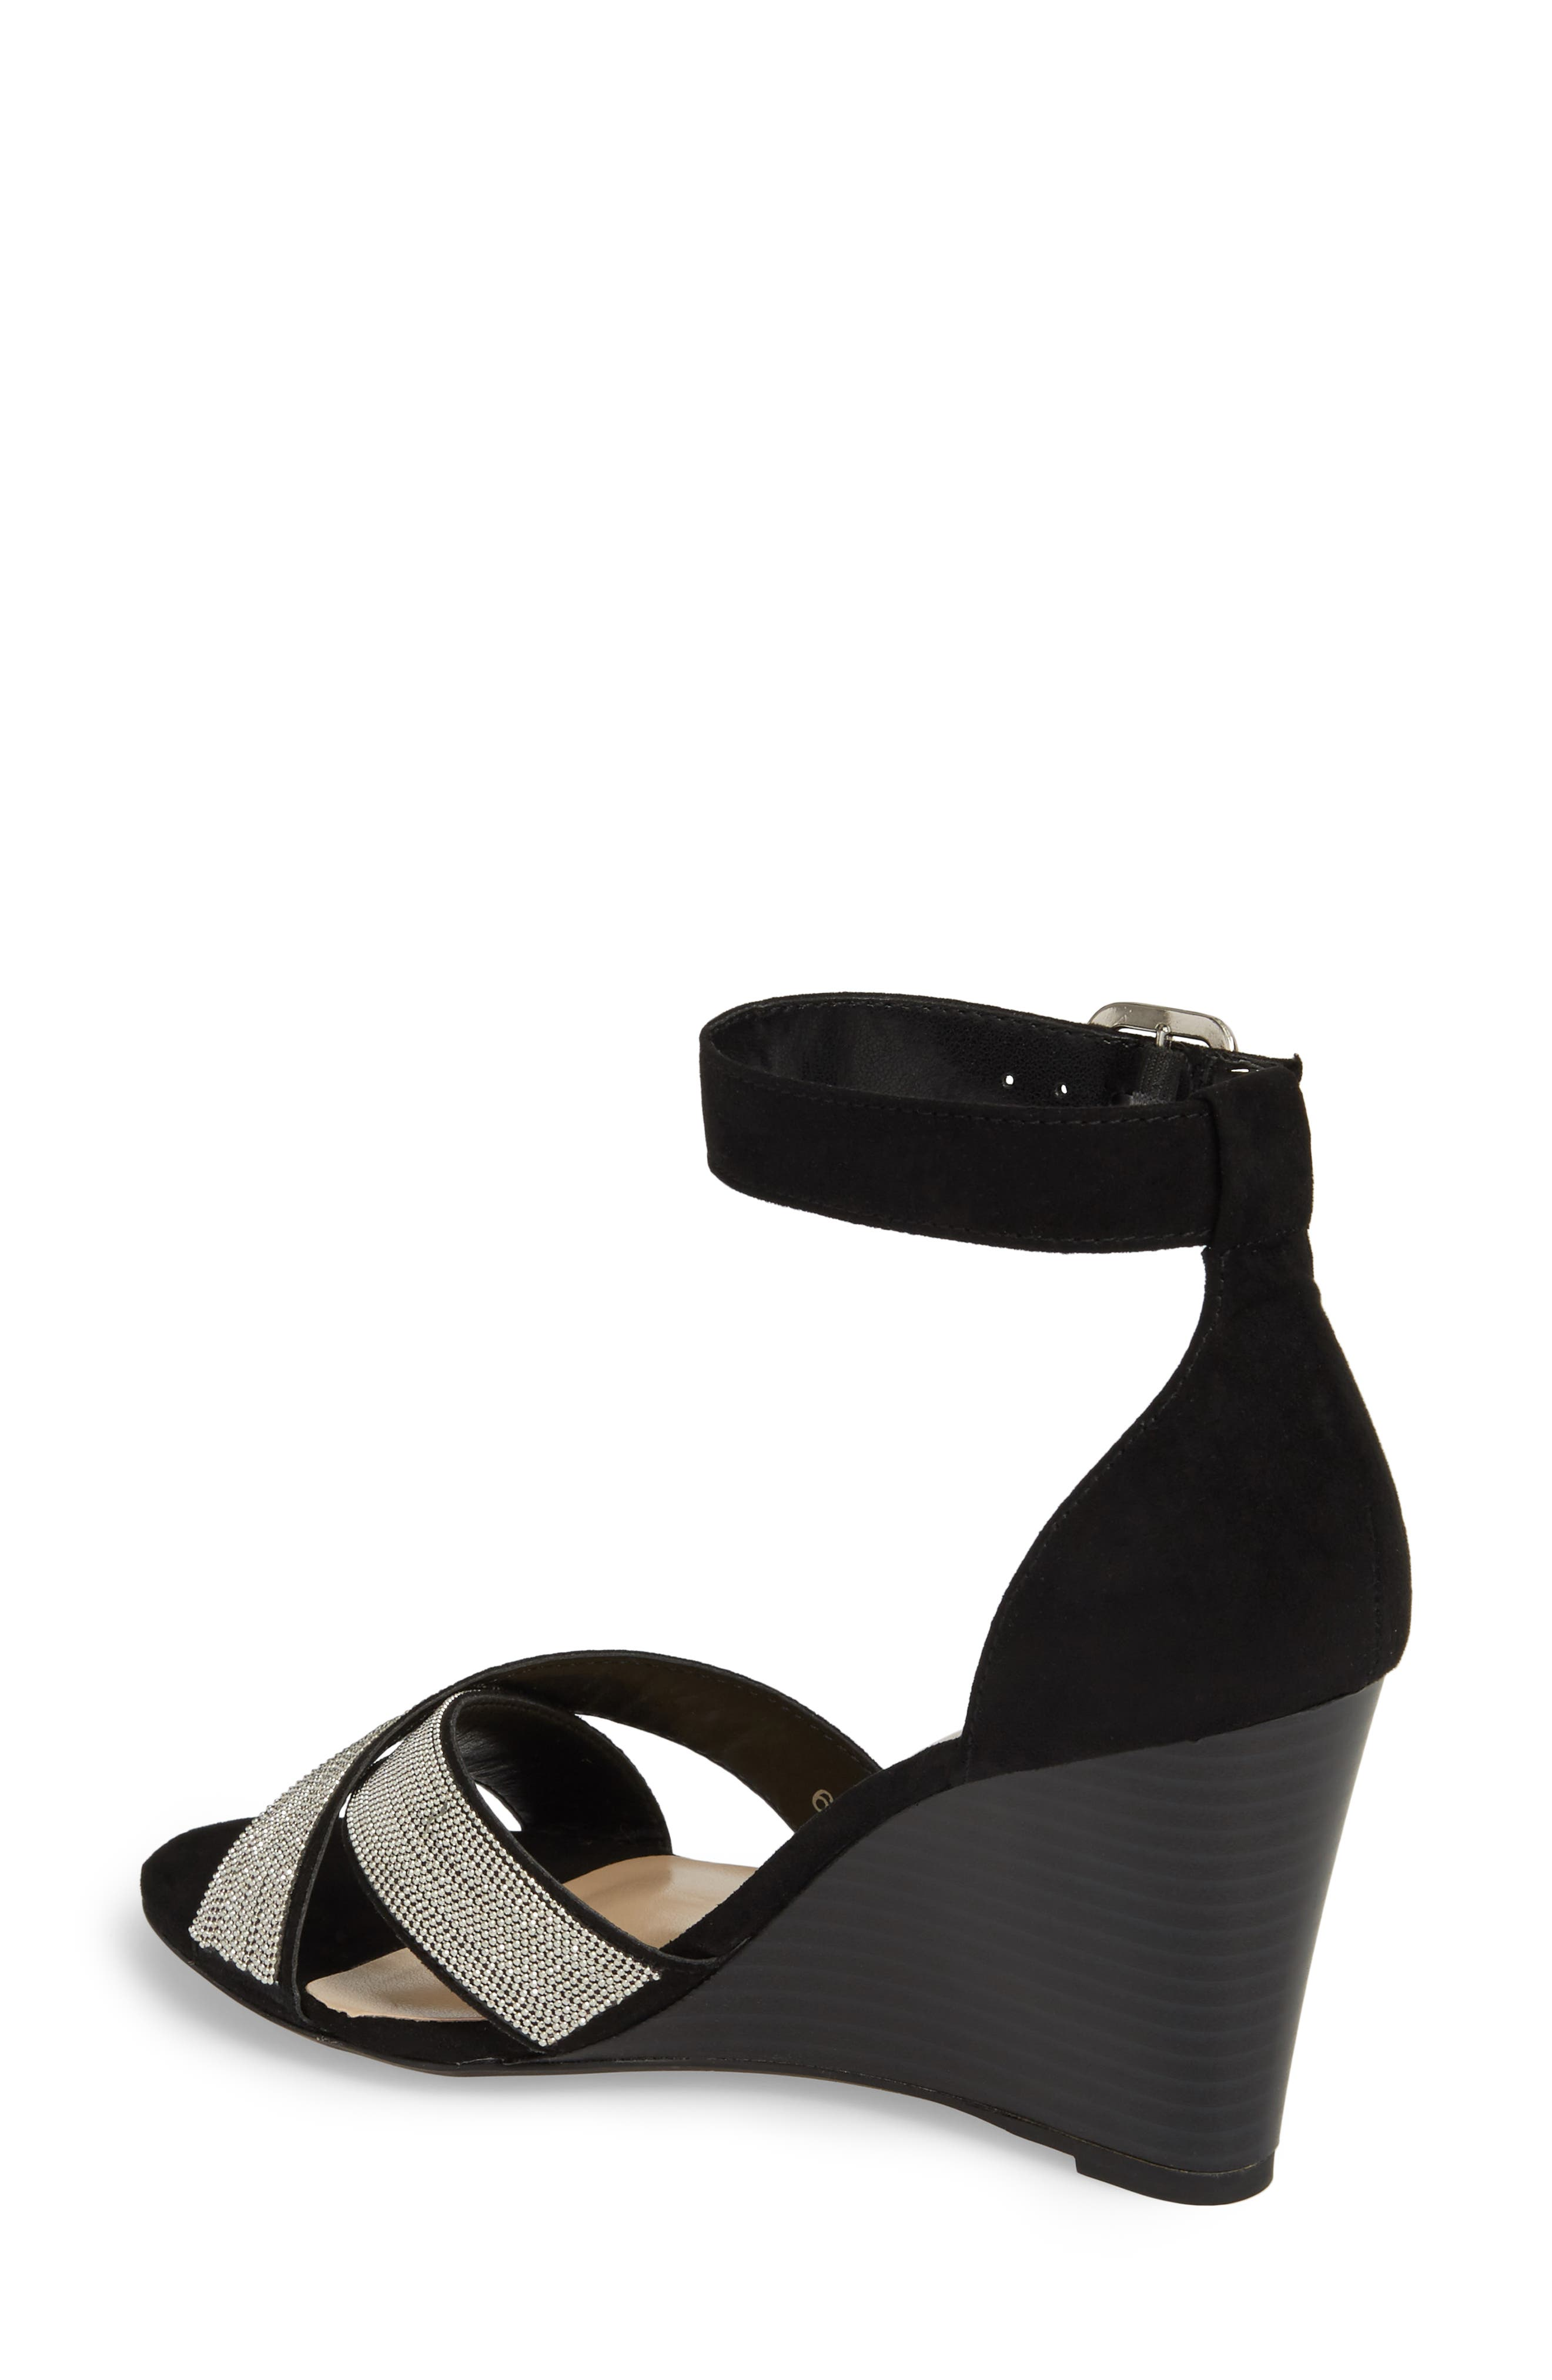 Zorra Wedge Sandal,                             Alternate thumbnail 2, color,                             003